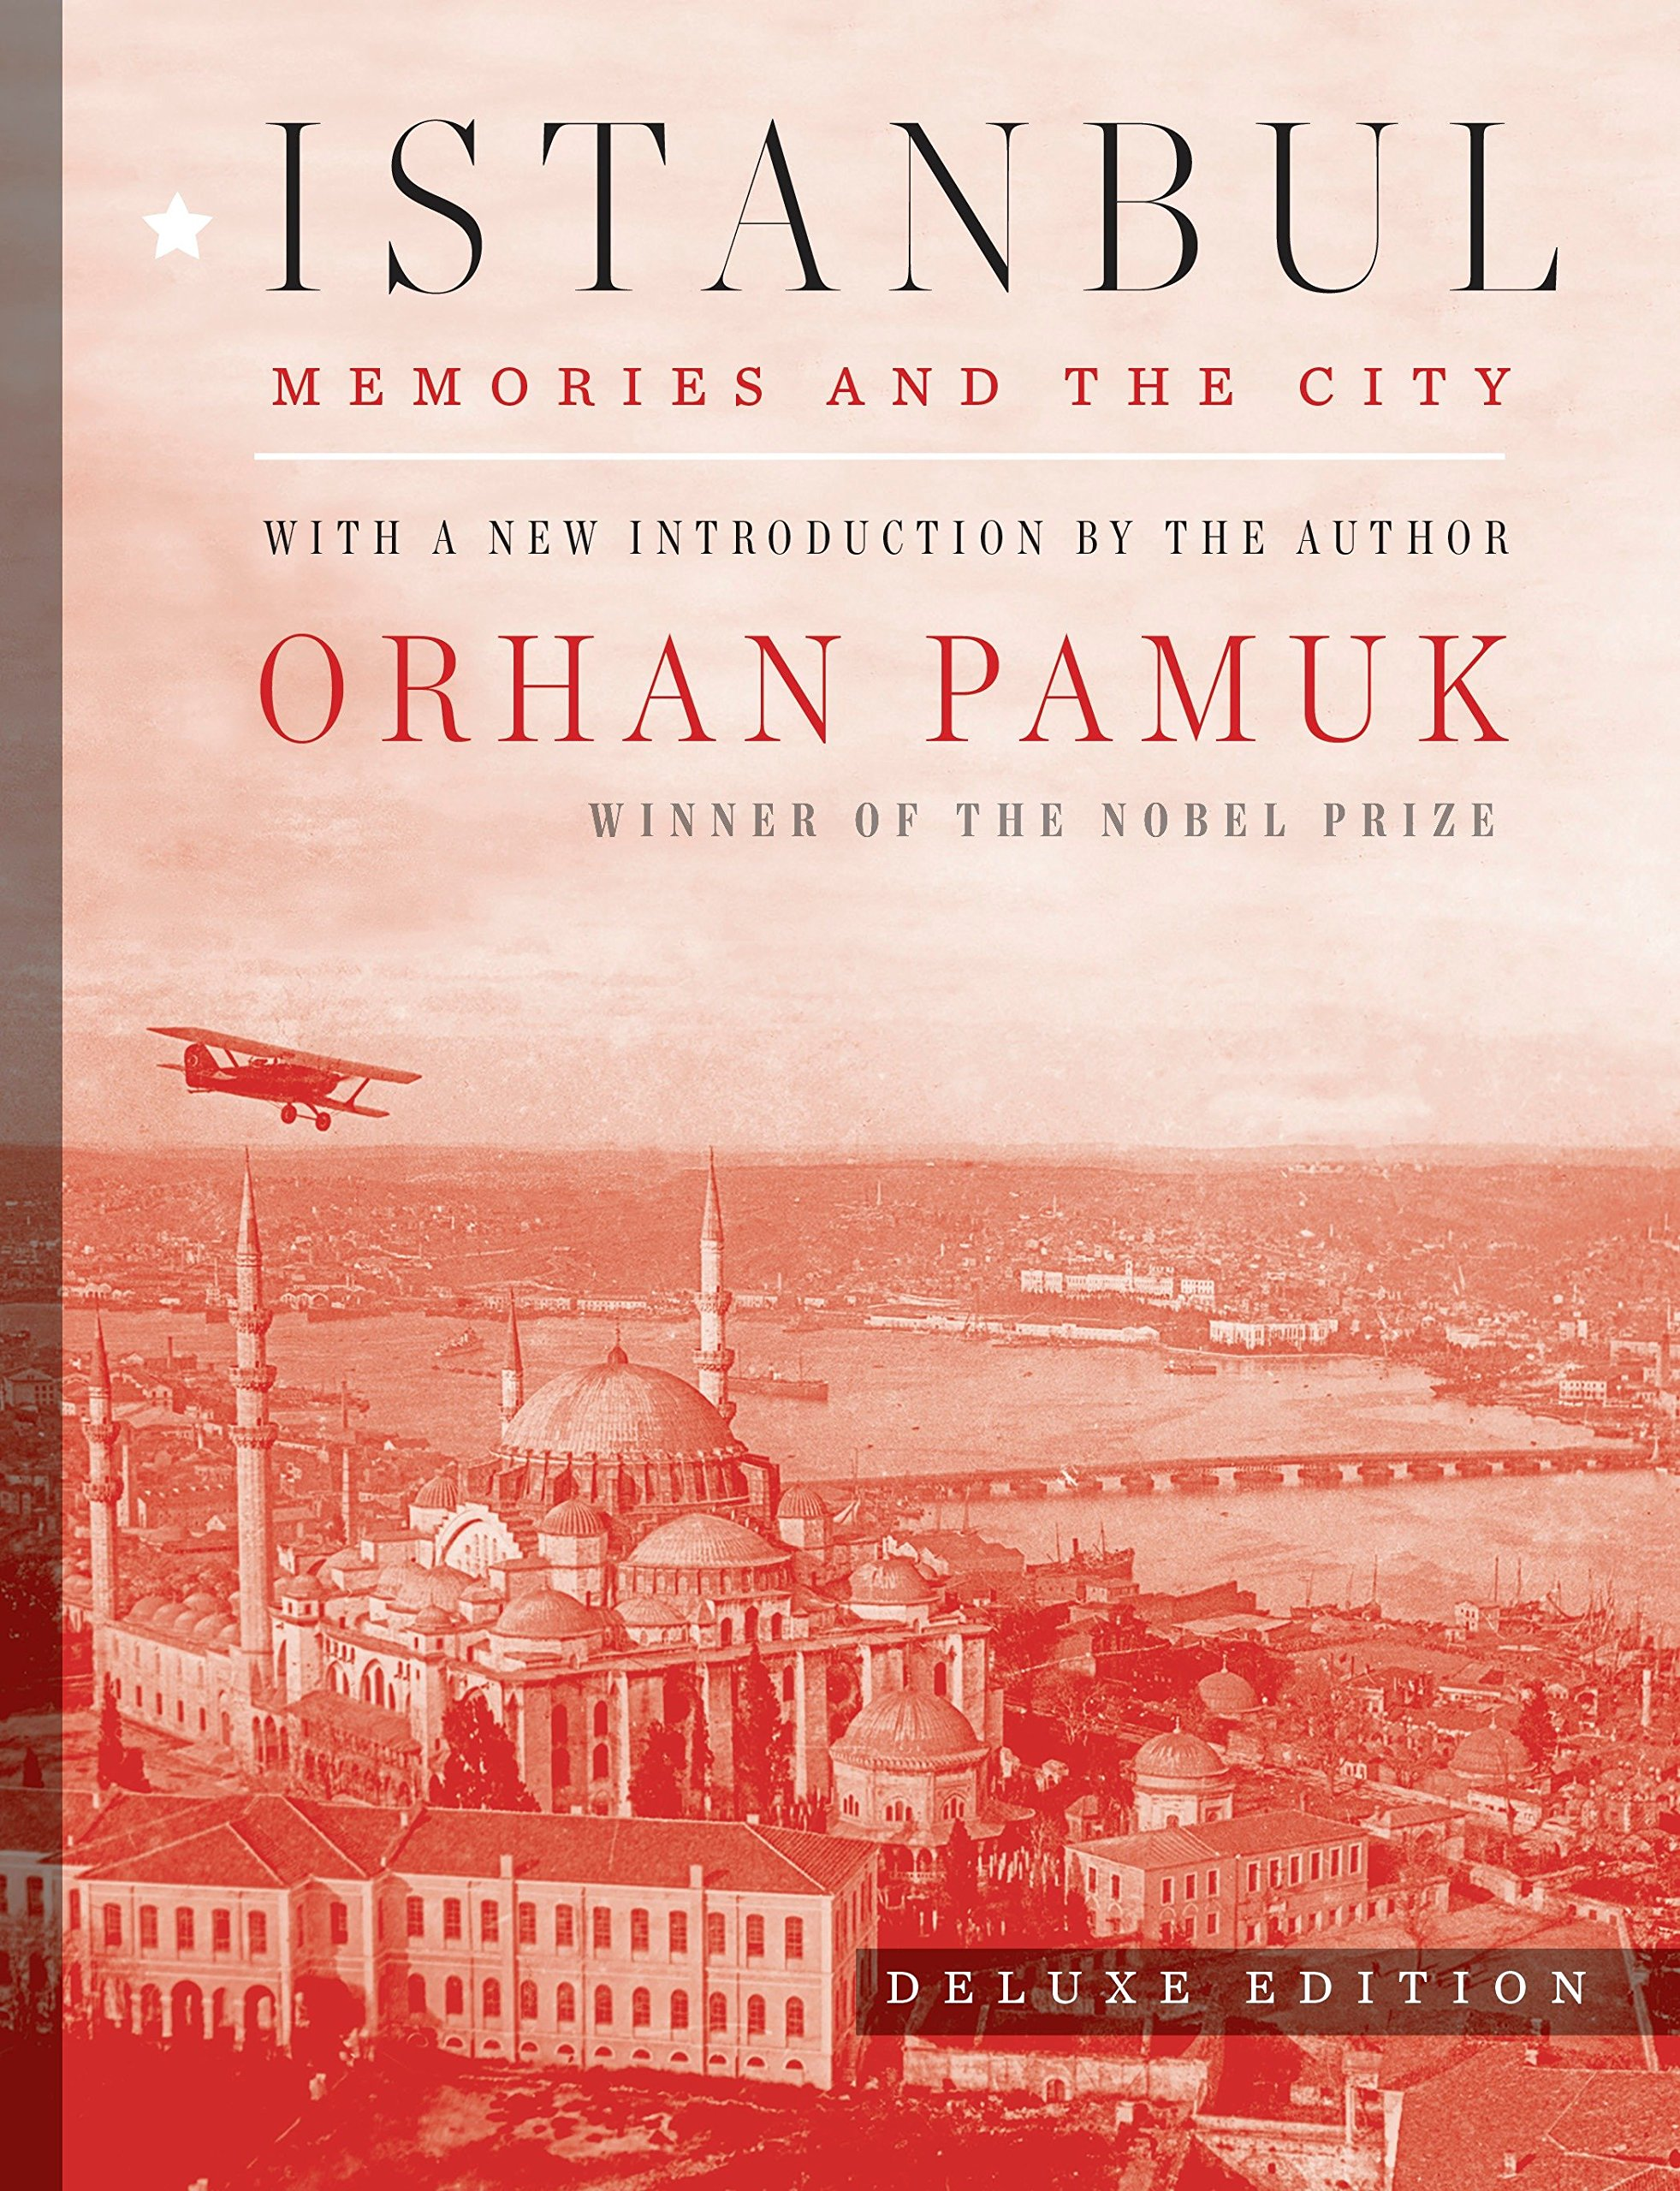 Amazon.com: Istanbul (Deluxe Edition): Memories and the City  (9781524732233): Orhan Pamuk: Books